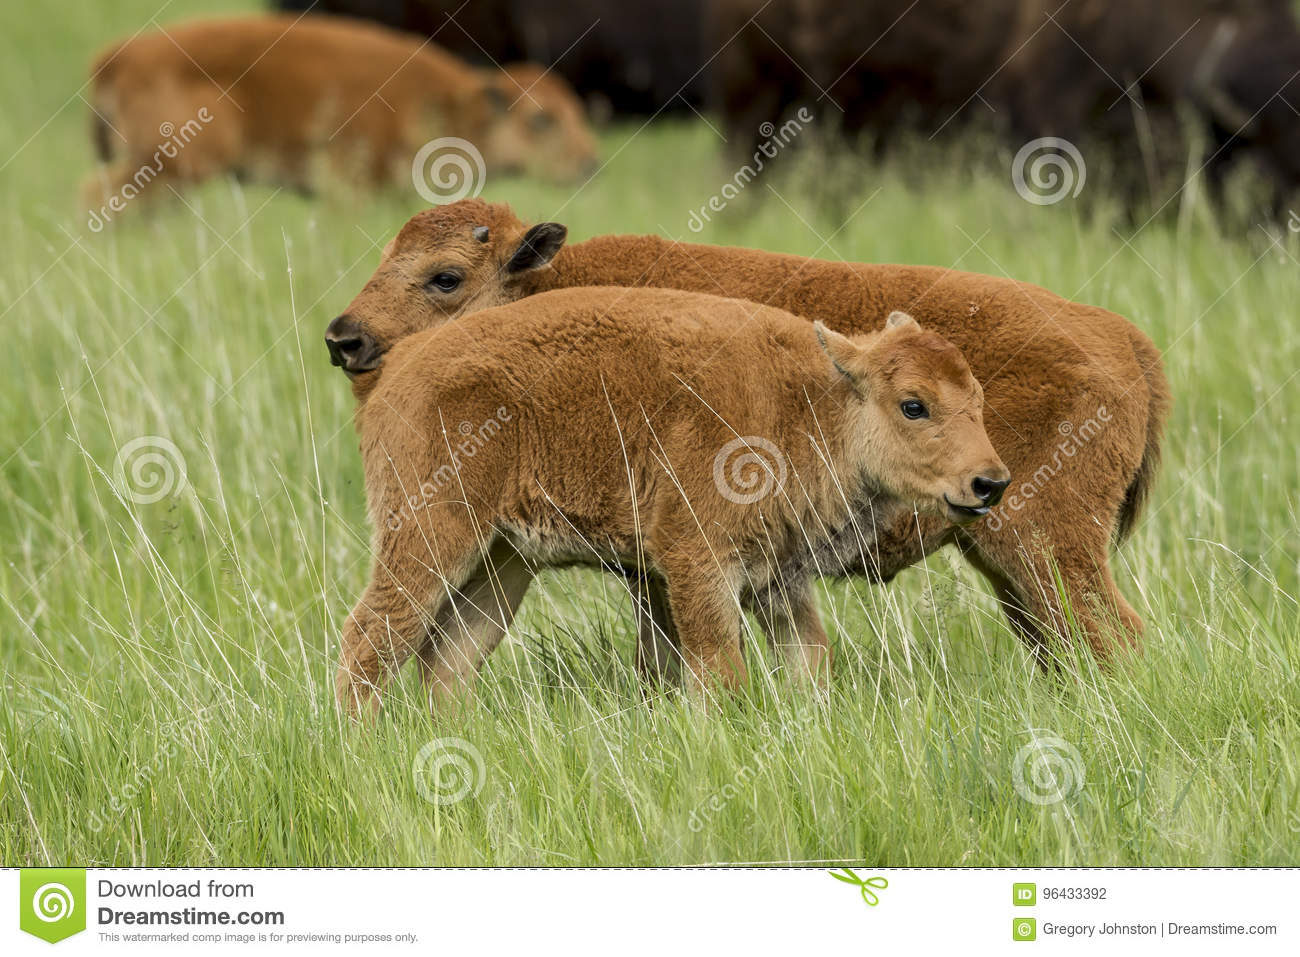 Two bison calves side by side.